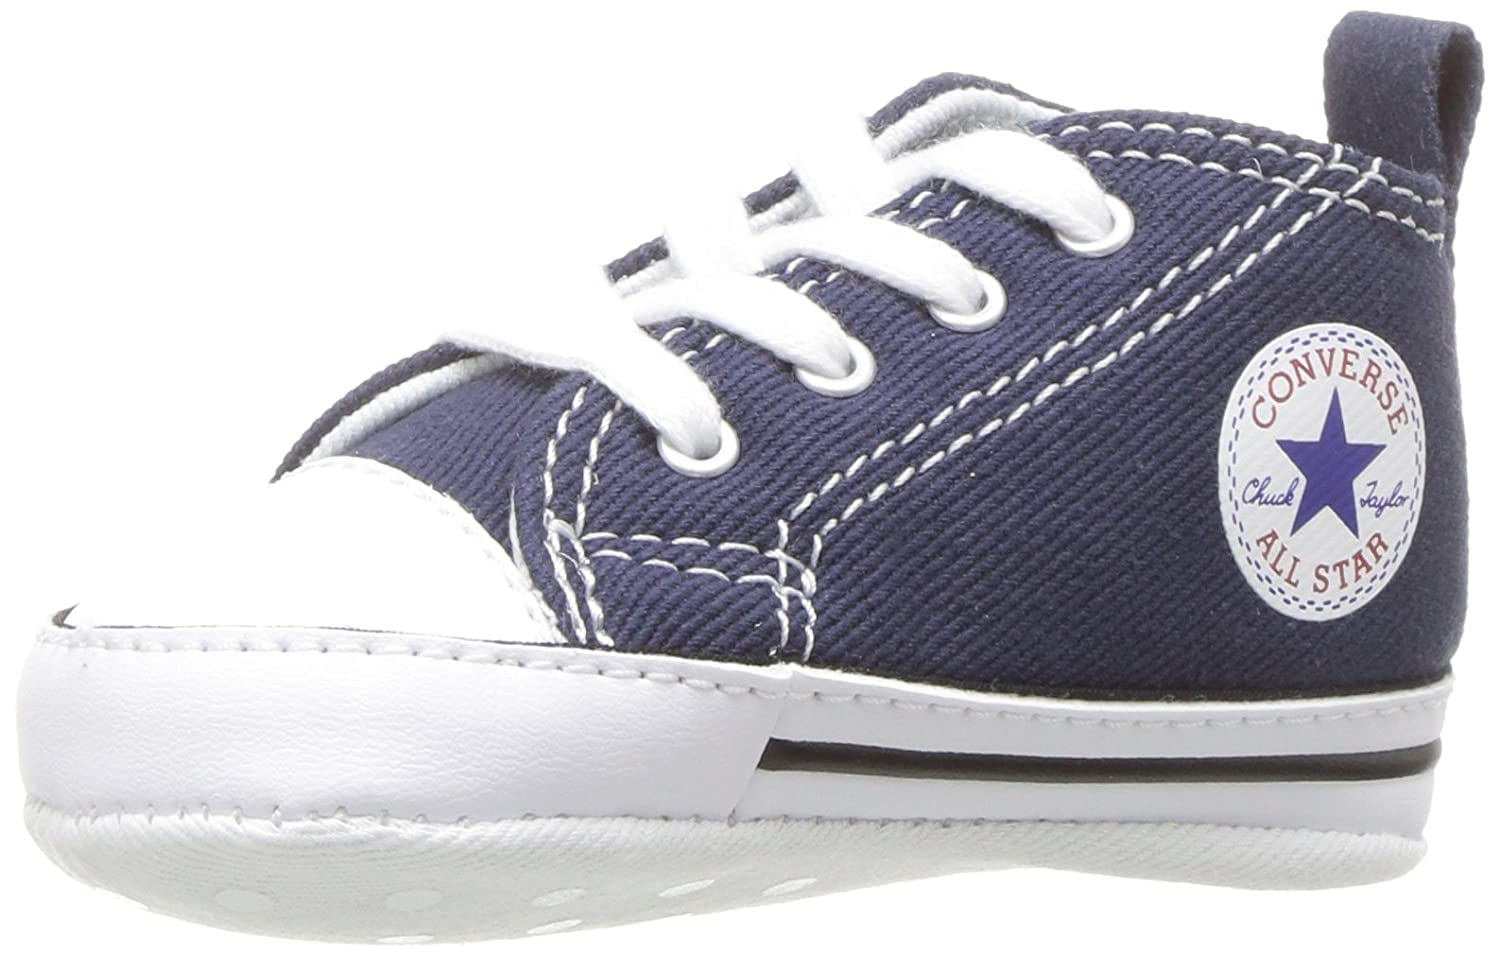 Converse Chucks FIRST STAR HI 022110-12-4